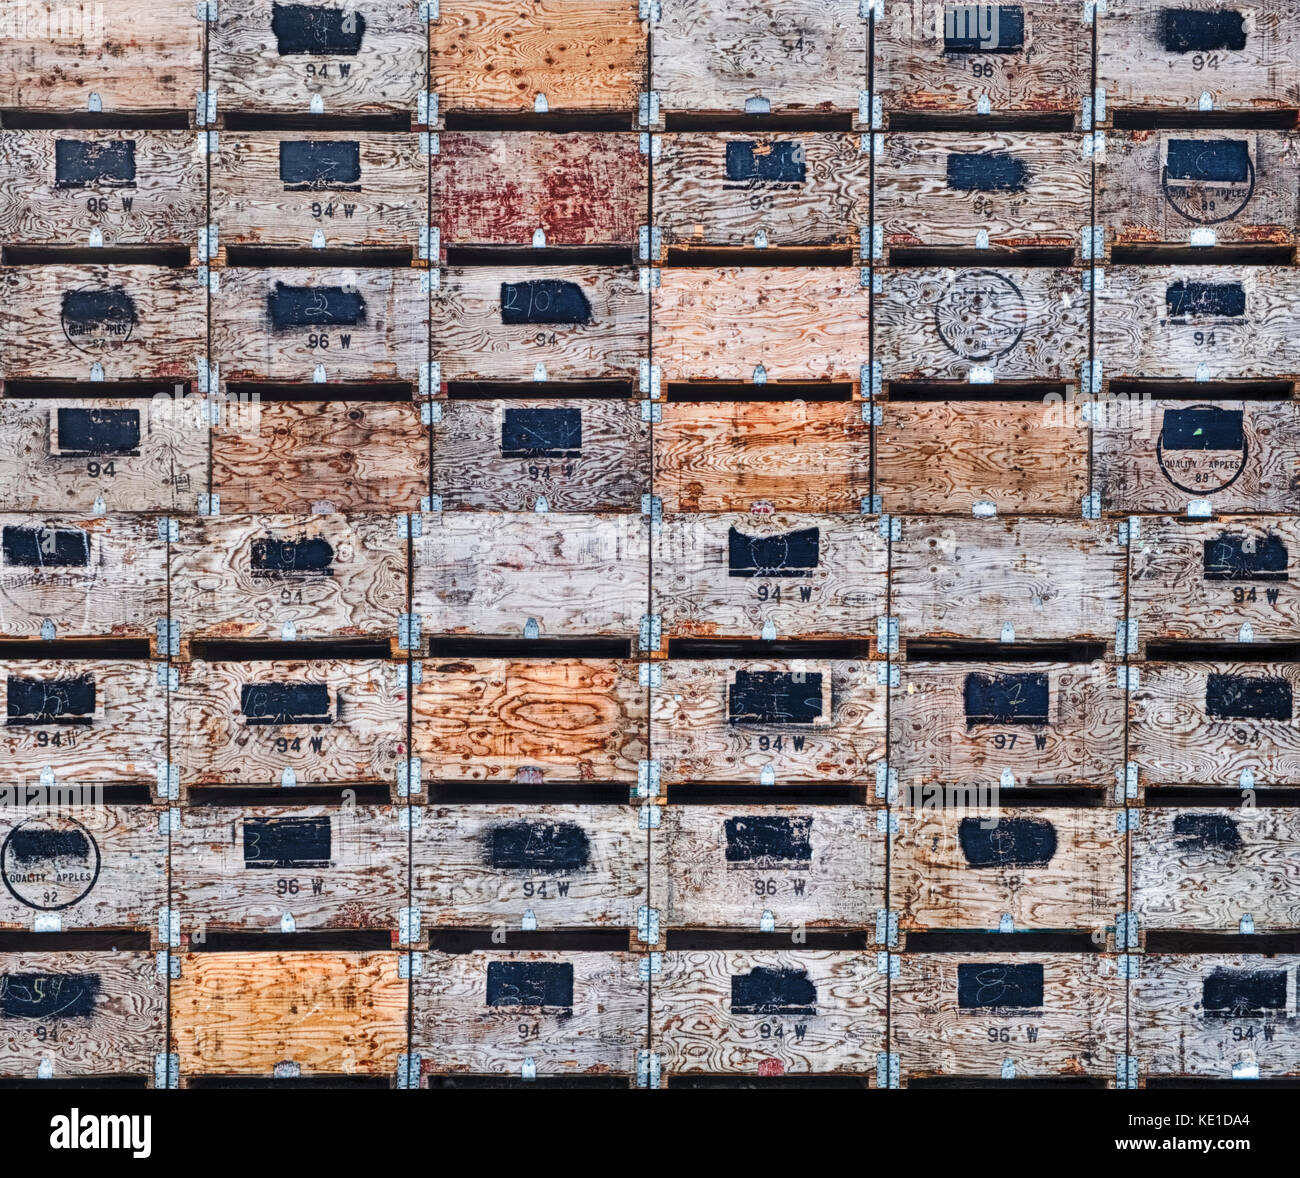 Huge stacks of wooden crates await the apple harvest in Washington State. Some of the boxes have marks indicating - Stock Image